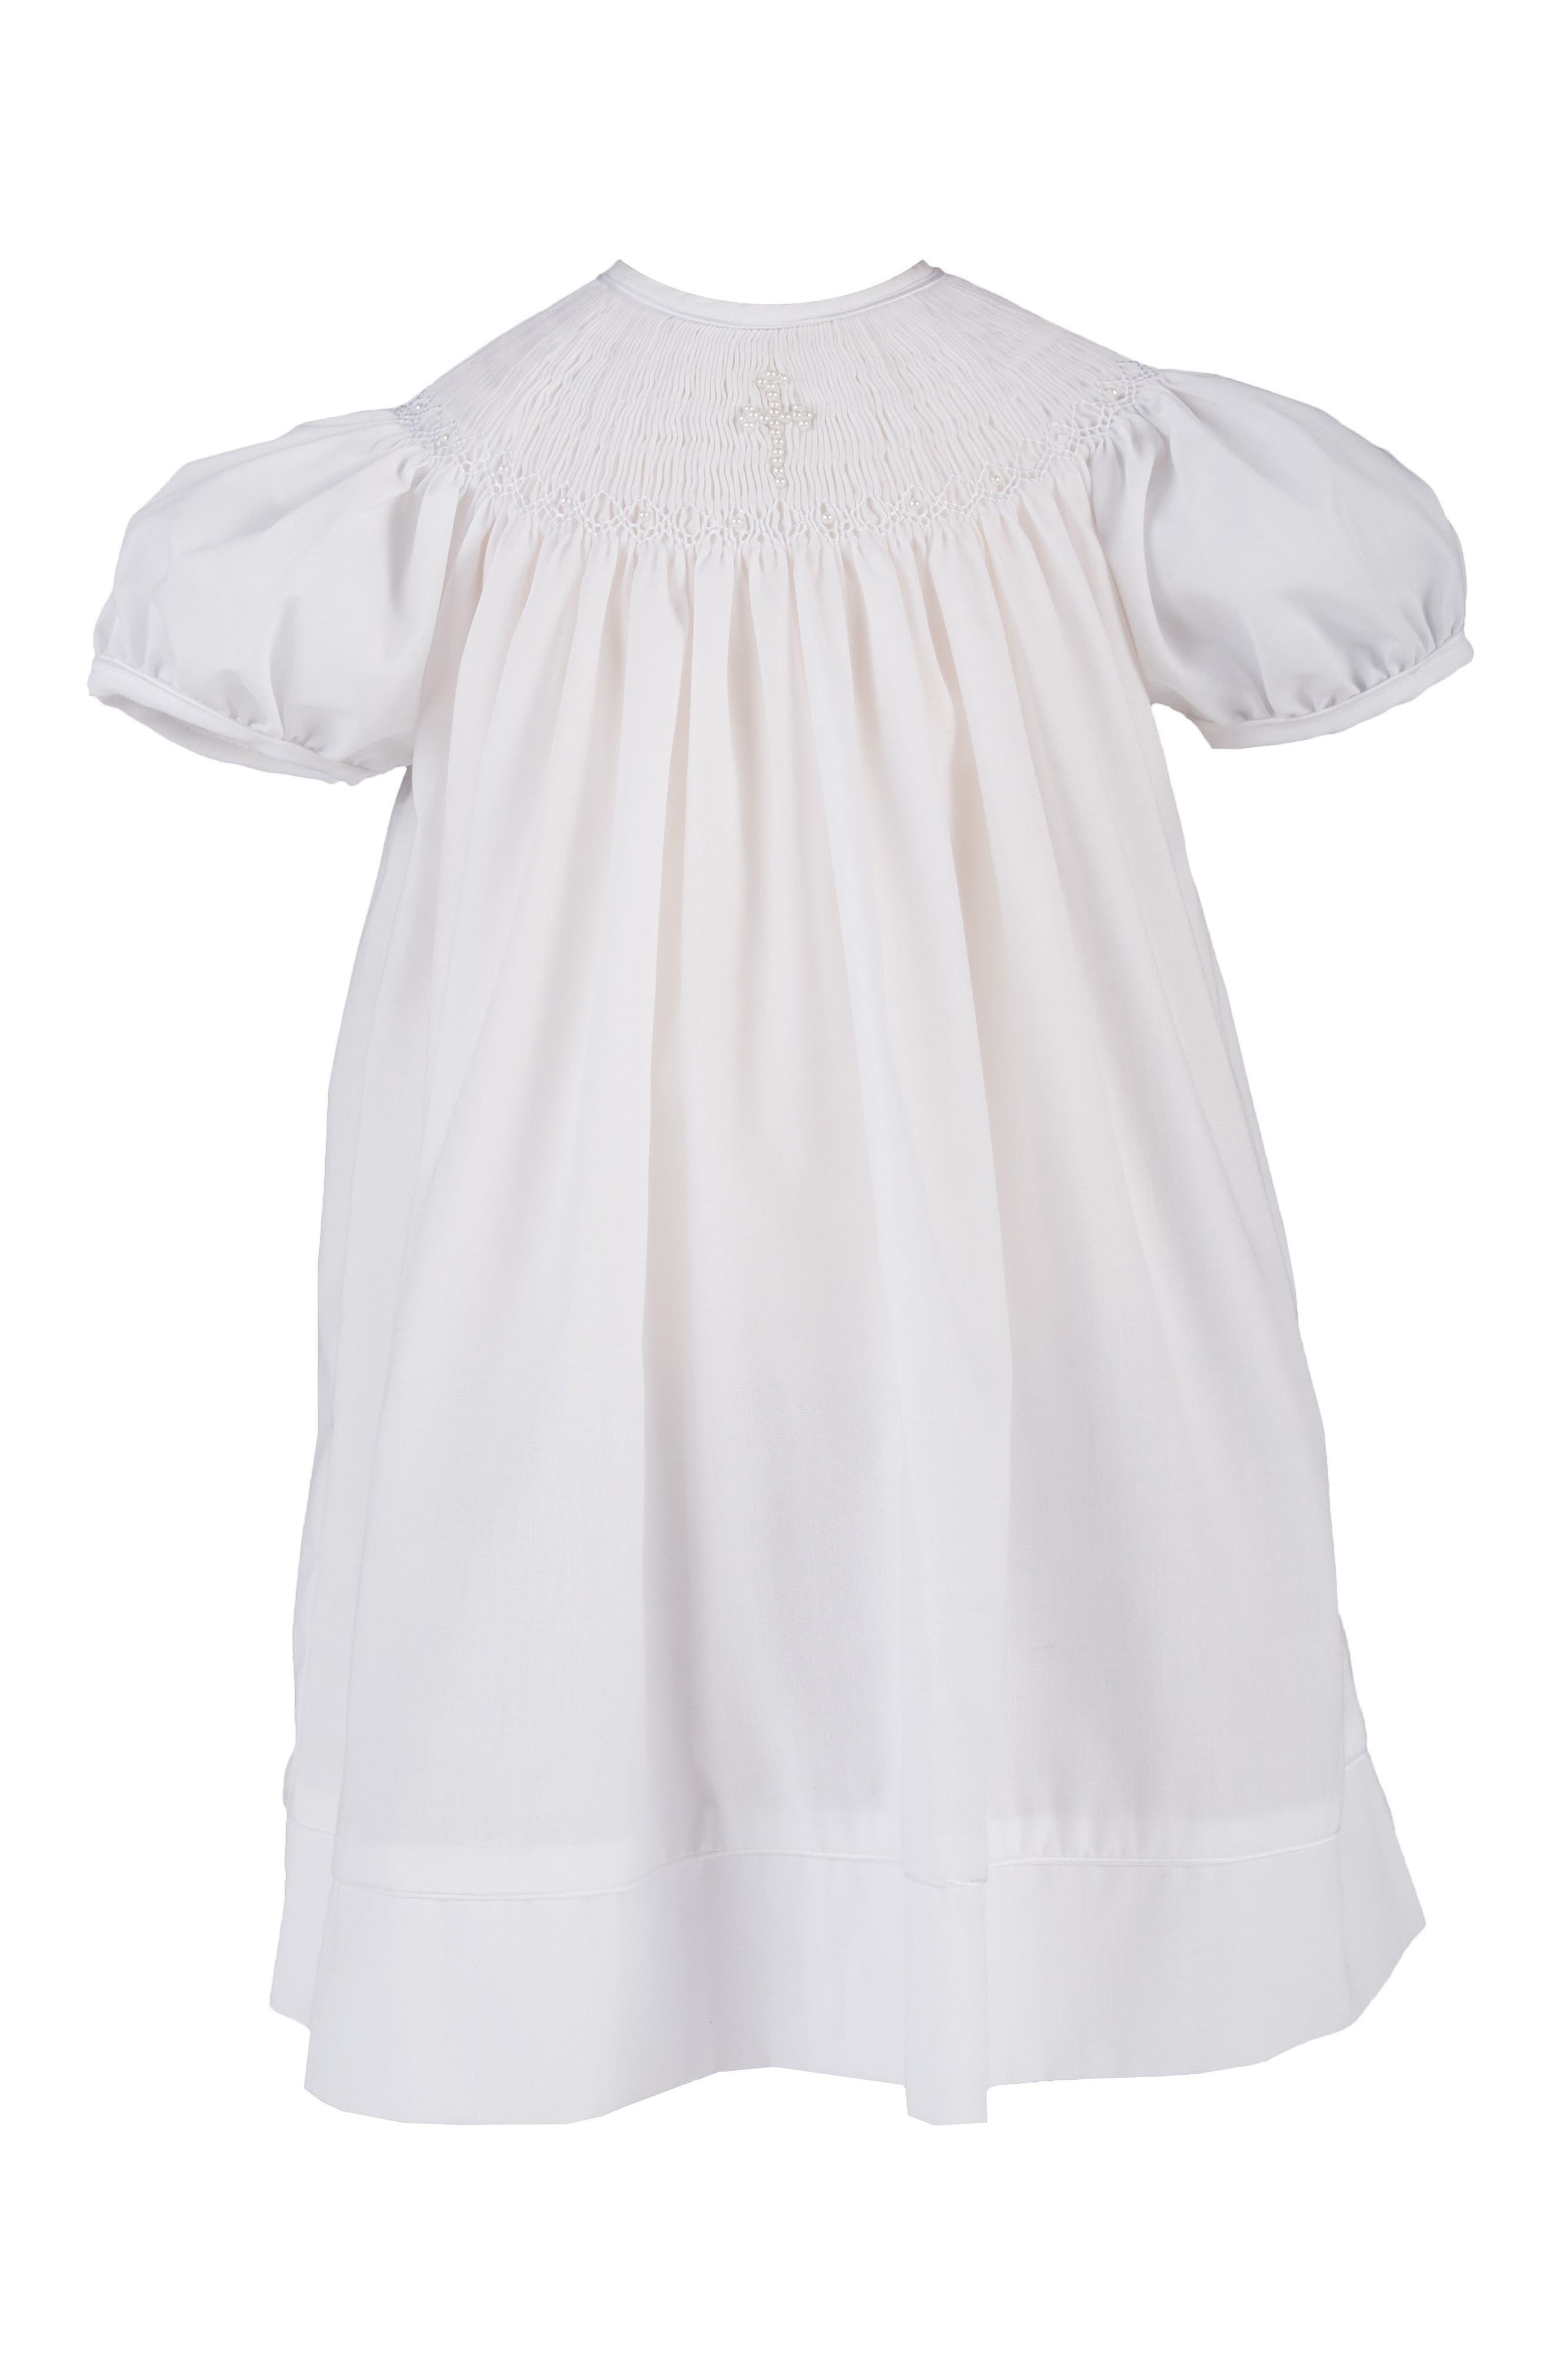 Carriage Boutique Christening Gown & Bonnet Set (Baby Girls)